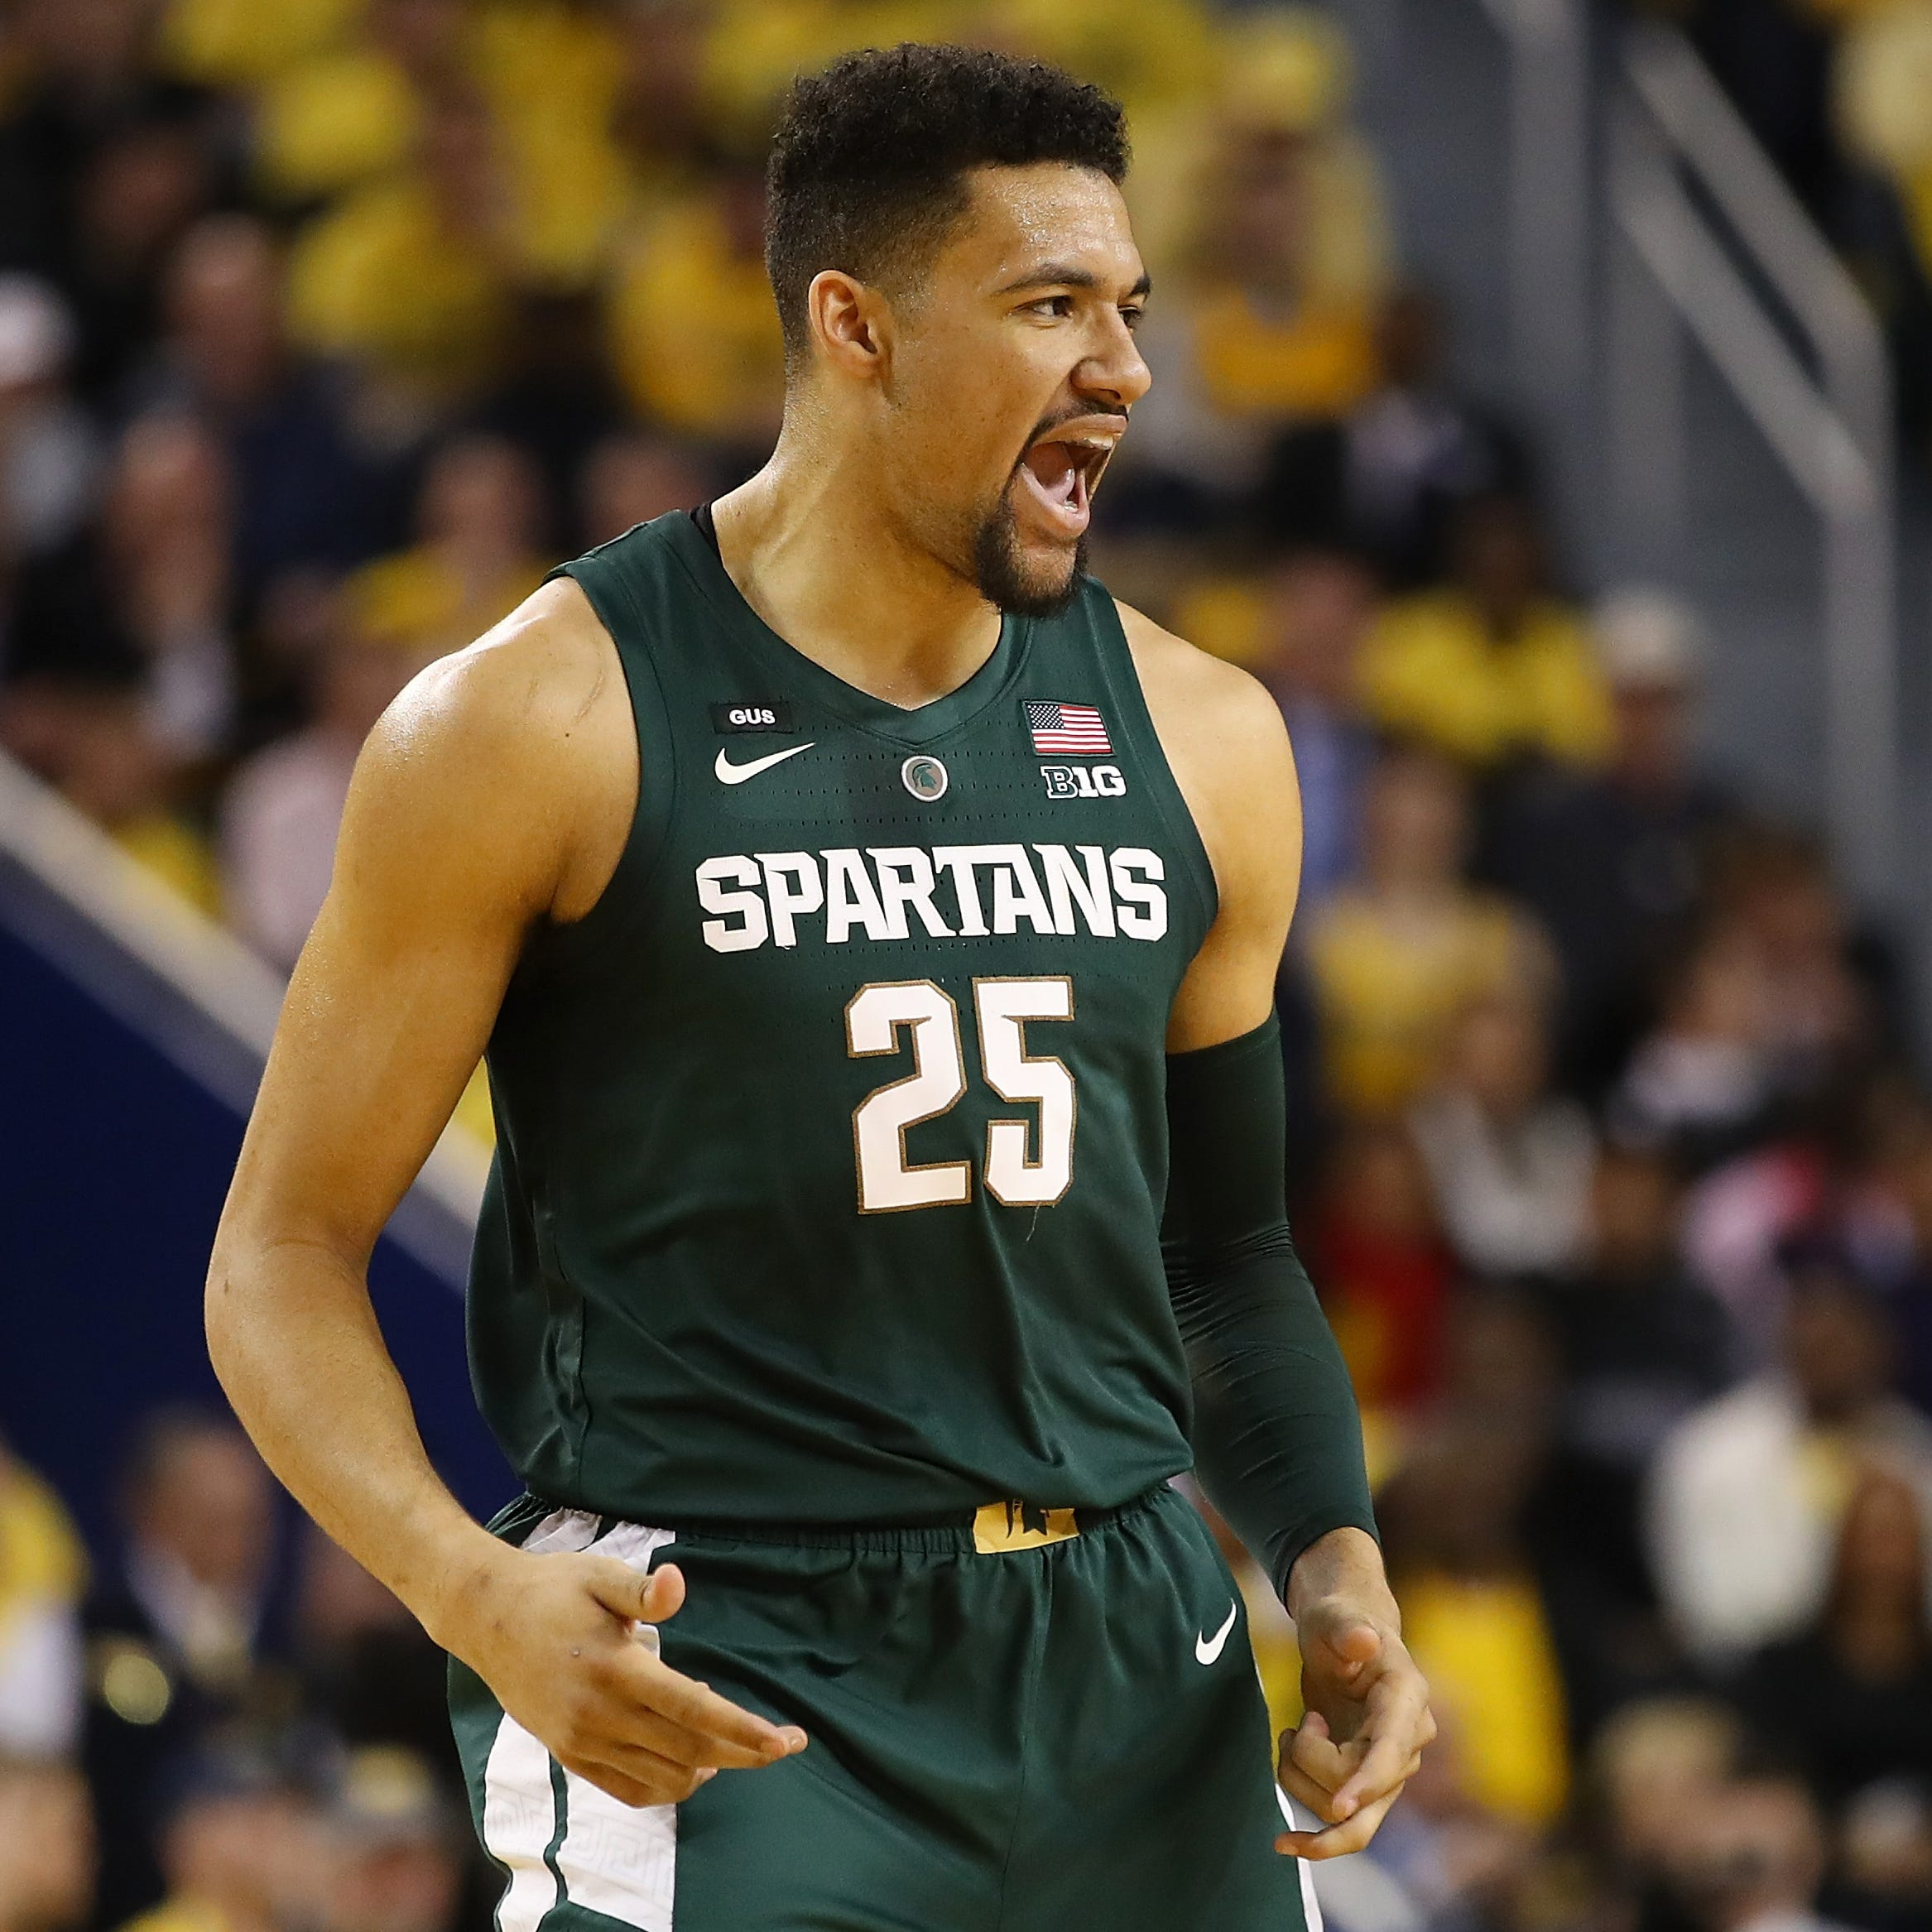 Time to rethink how we label Michigan State's role-playing studs